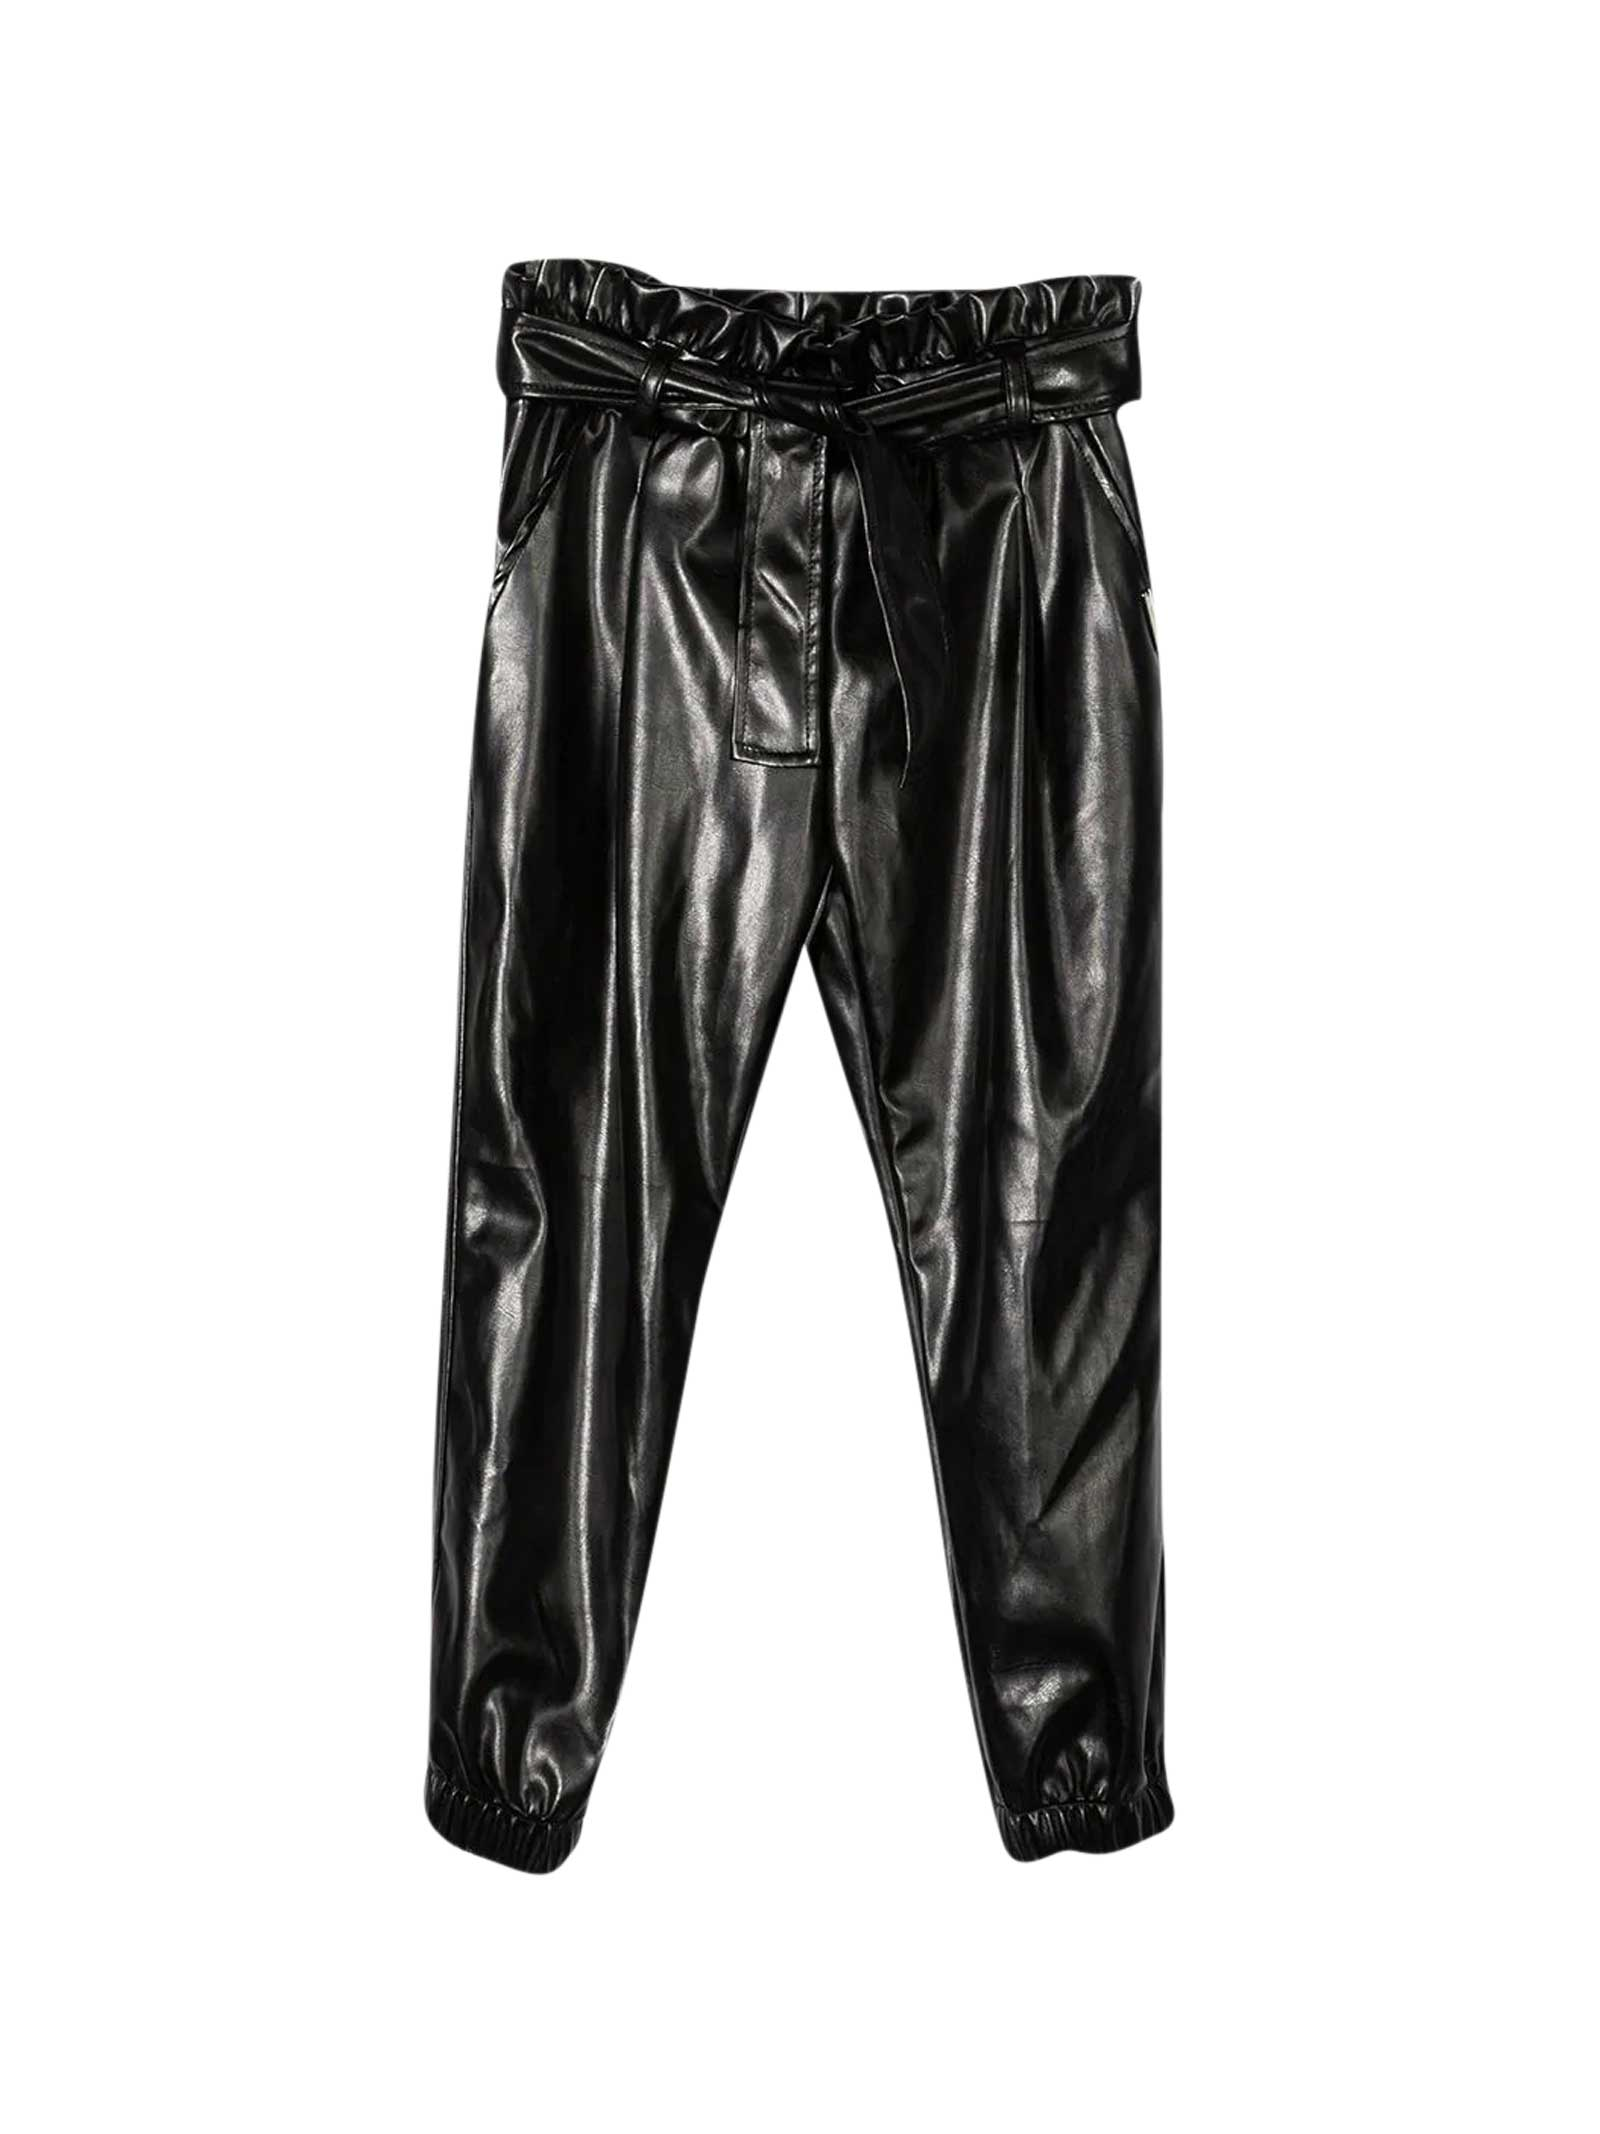 Black pants teen. Leather effect with a high waist bag closed by a knotted belt. Slim fit.